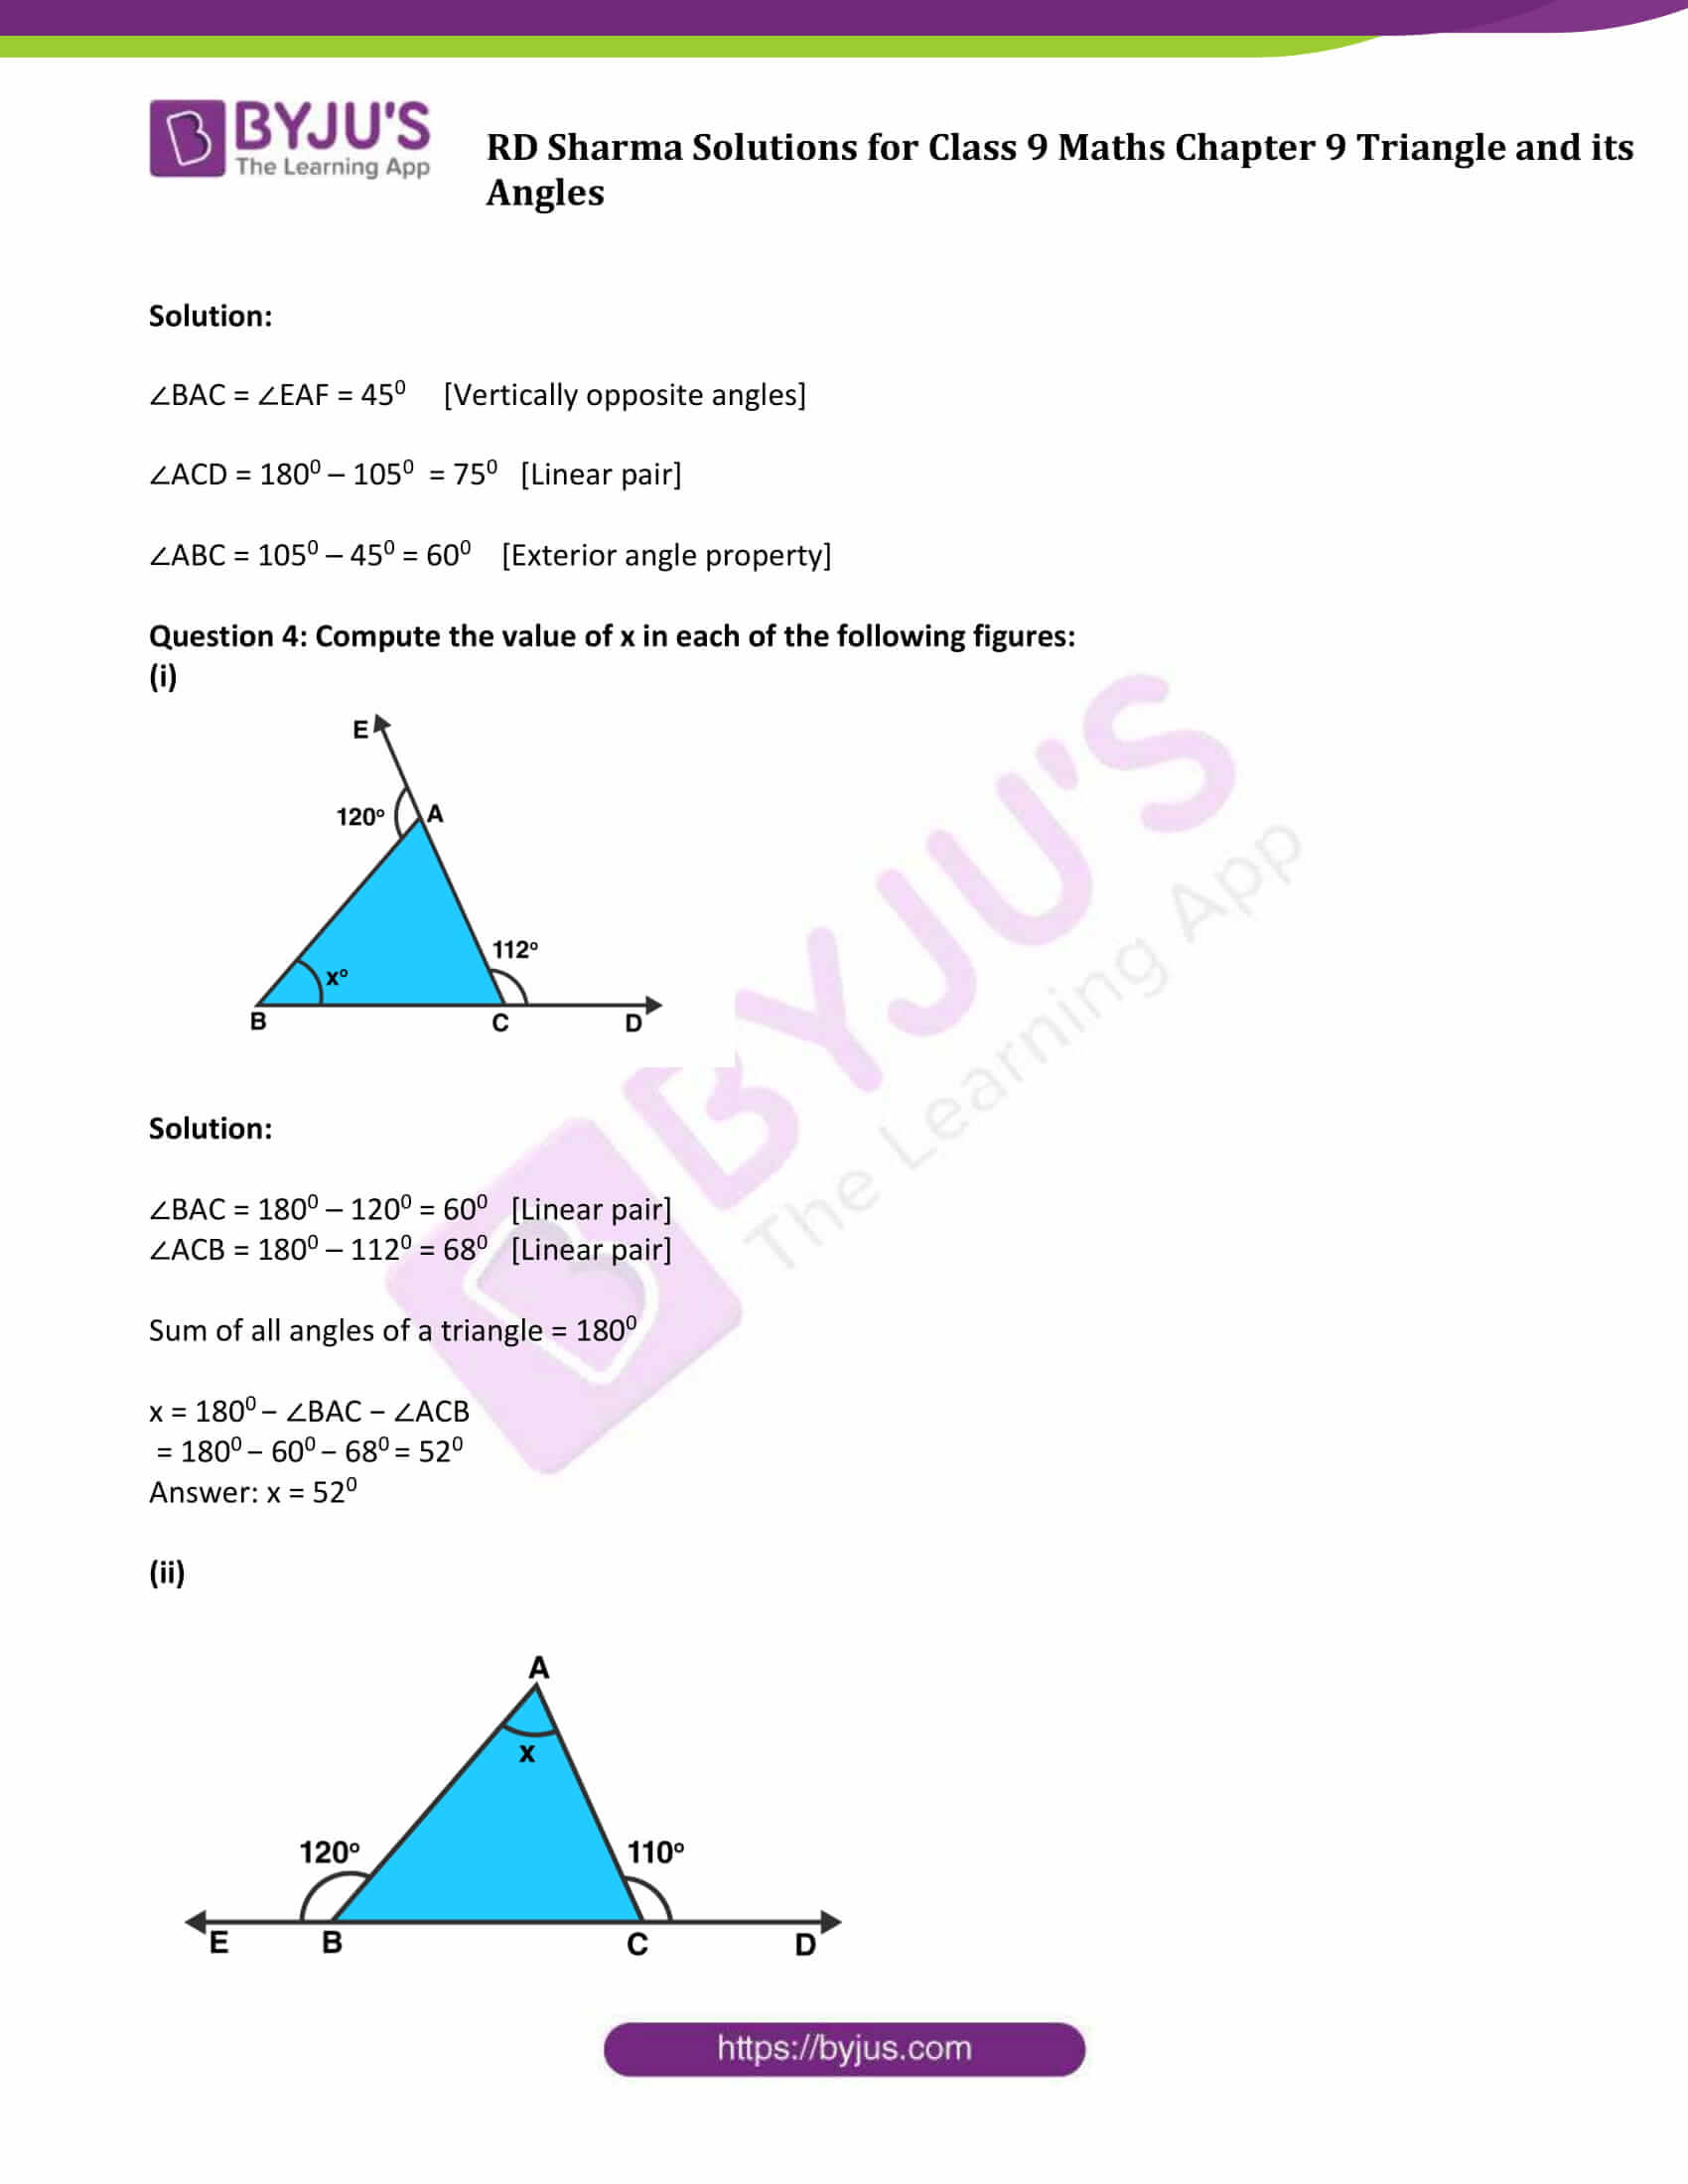 RD Sharma Solution class 9 Maths Chapter 9 Triangle and its Angles 07